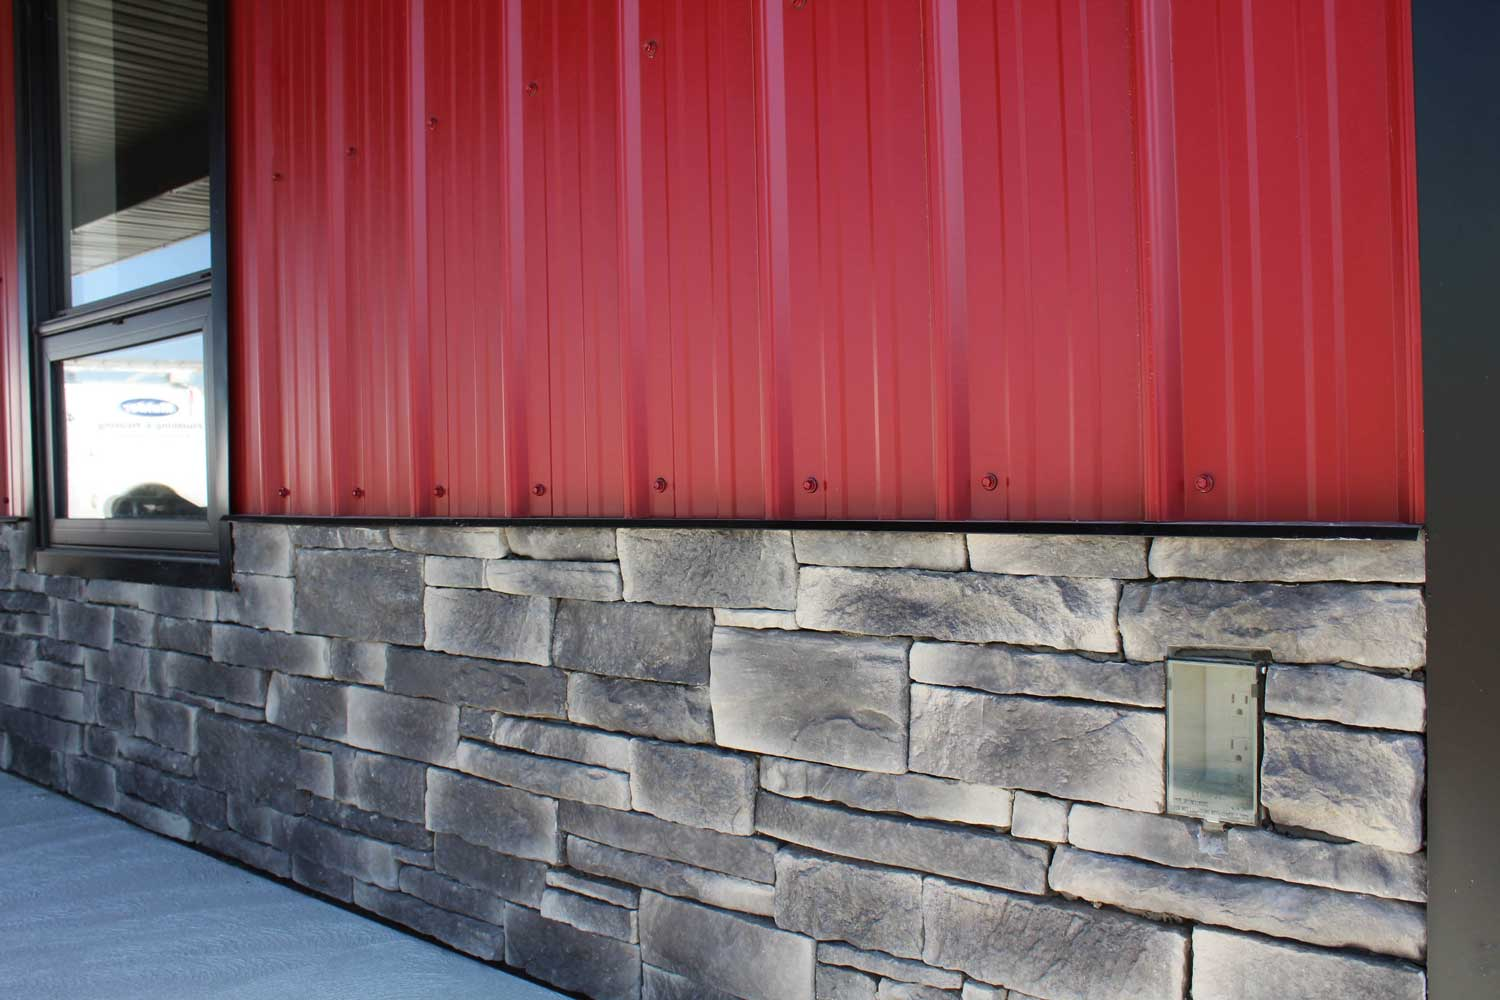 Commercial Building with FC-36 Dark Red